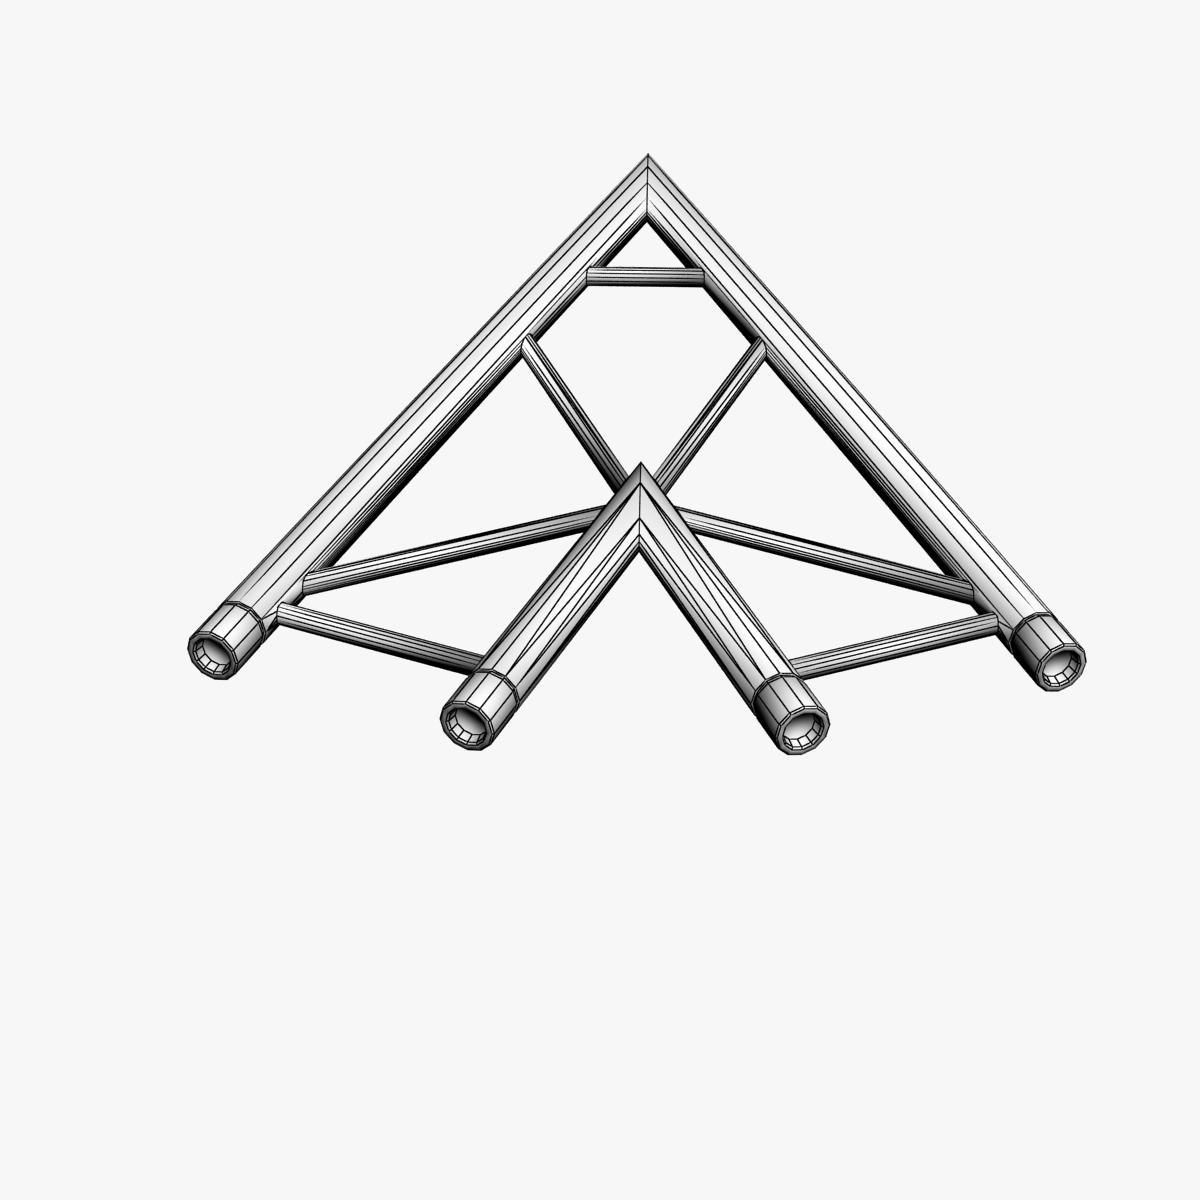 beam trusses (collection 24 modular pieces) 3d model 3ds max dxf fbx bmp blend c4d dae other obj 268748